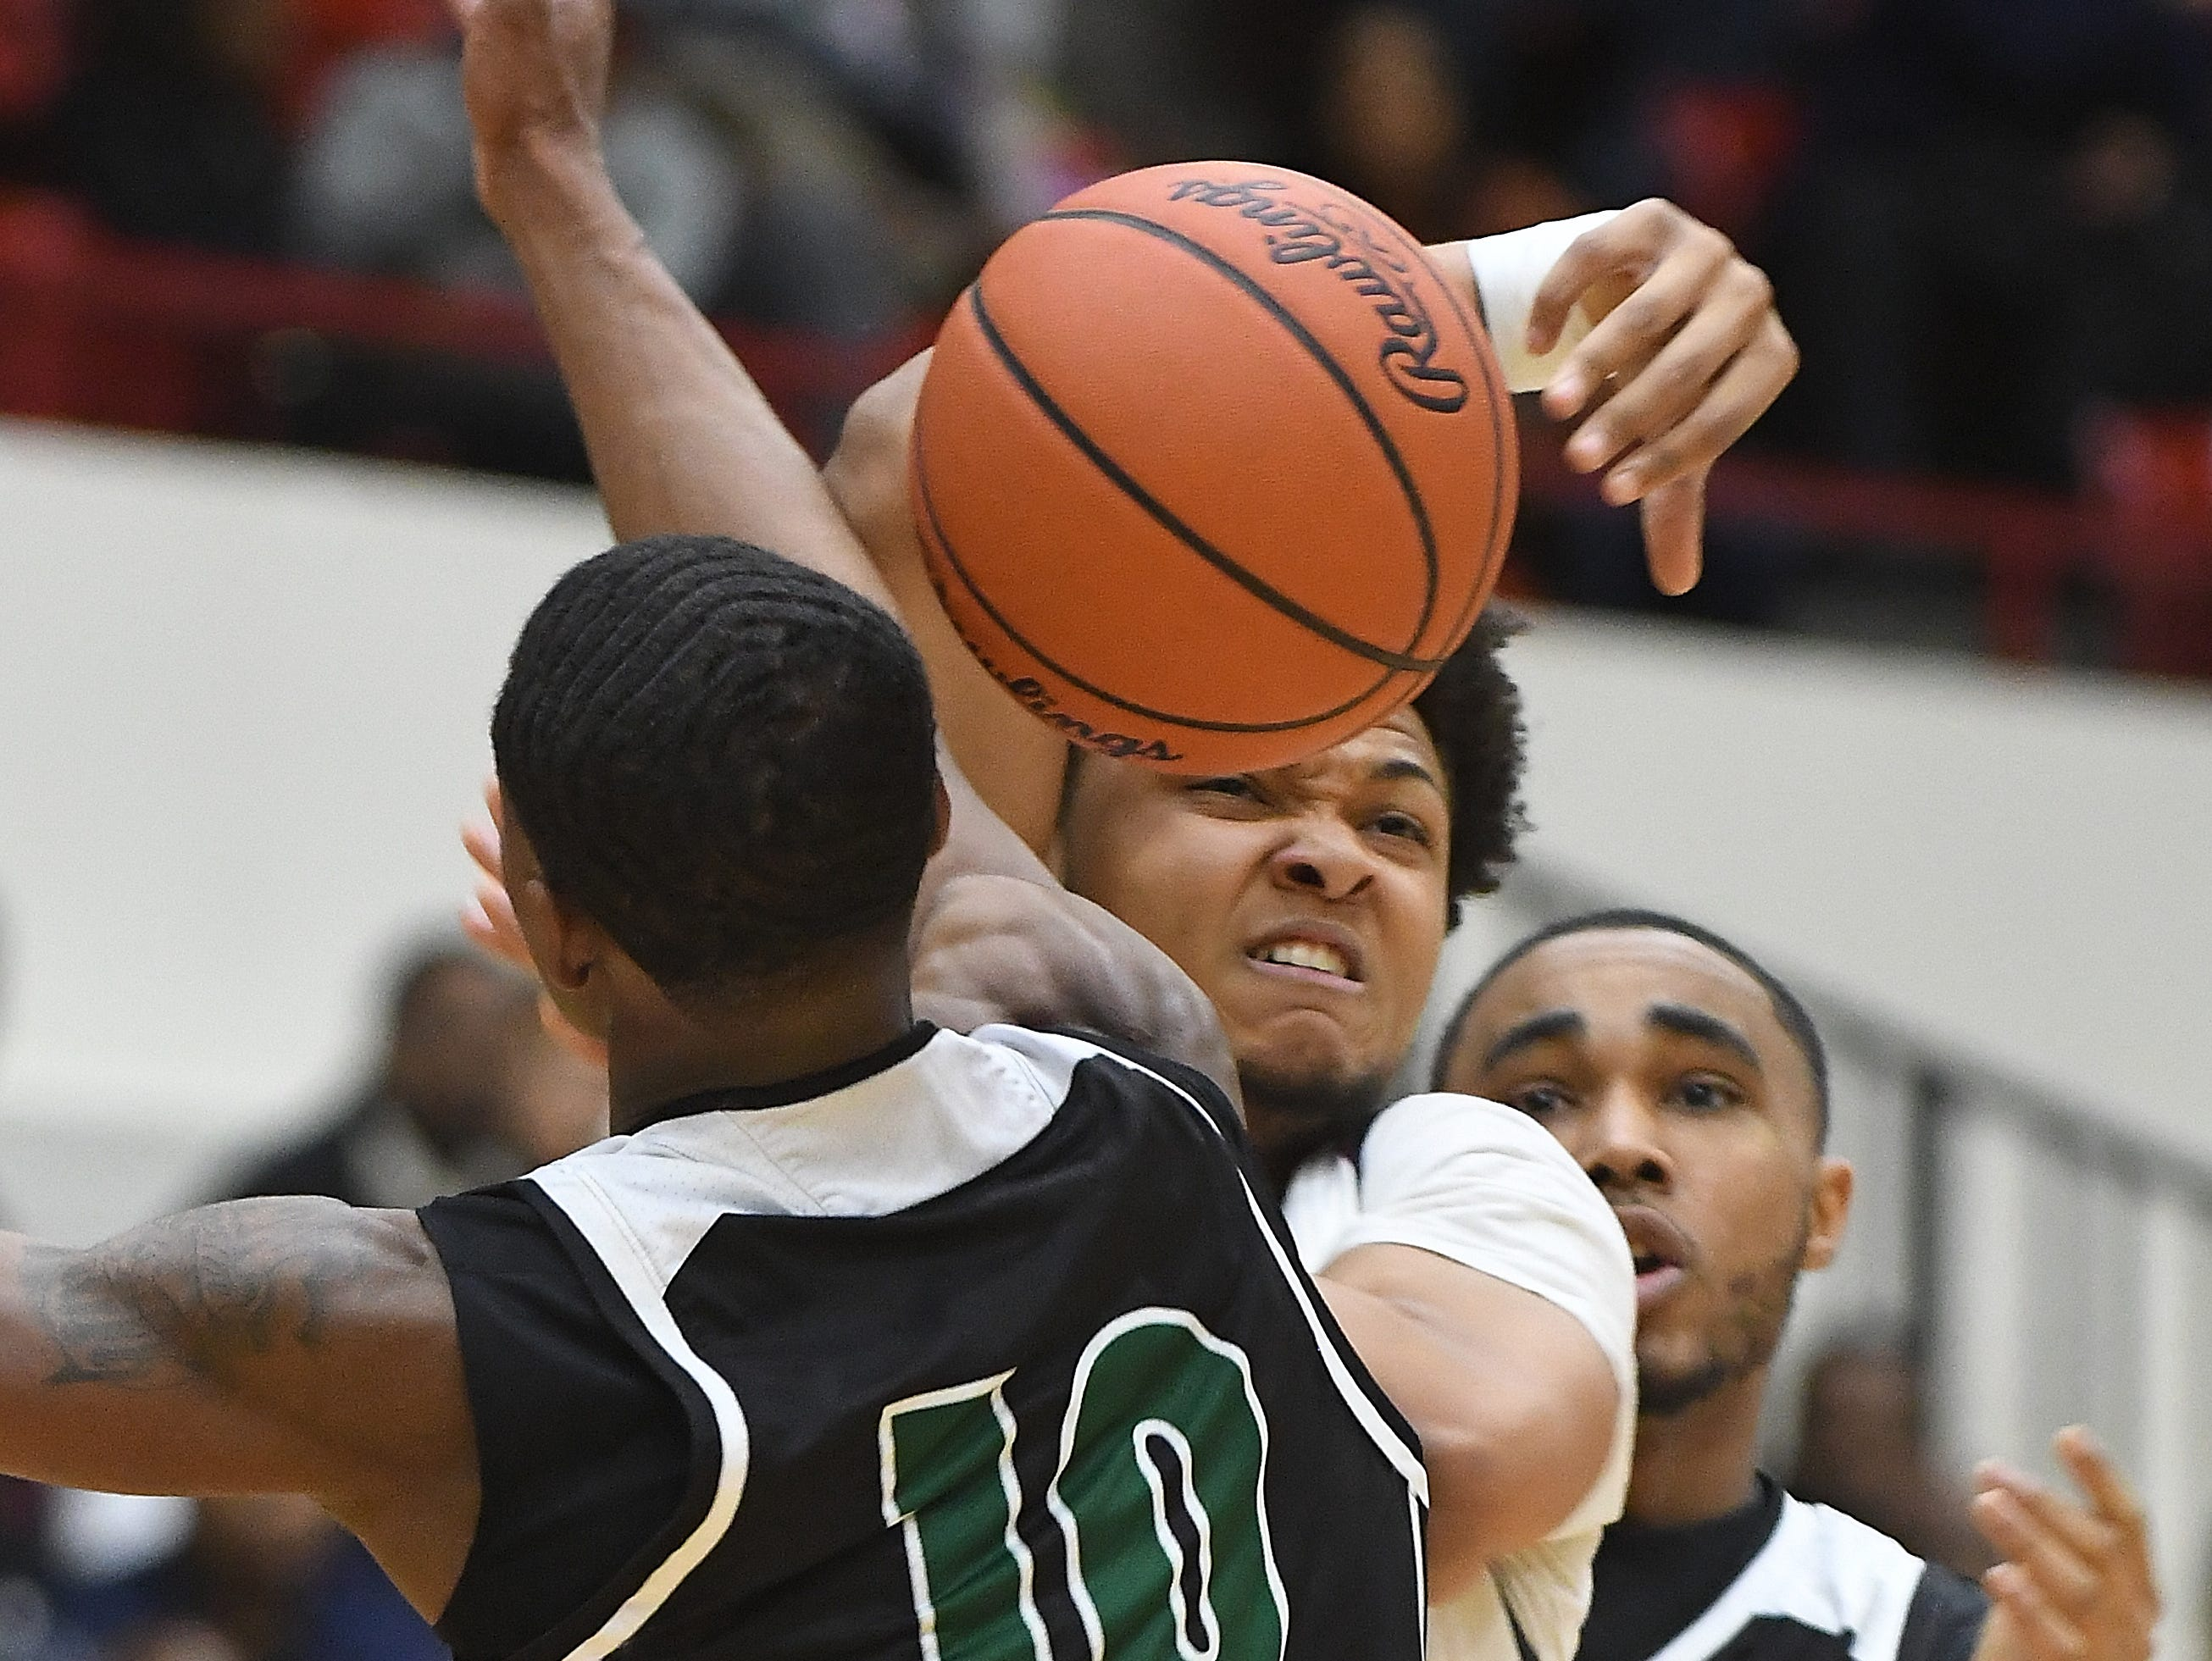 Cass Tech's Michael Washington Hill defends against  U of D Jesuit's Daniel Friday in the first half of the Operation Friendship championship game between Cass Tech and U. Of D. Jesuit at Calihan Hall on the campus of the University of Detroit Mercy in Detroit, Michigan on February 22, 2019.